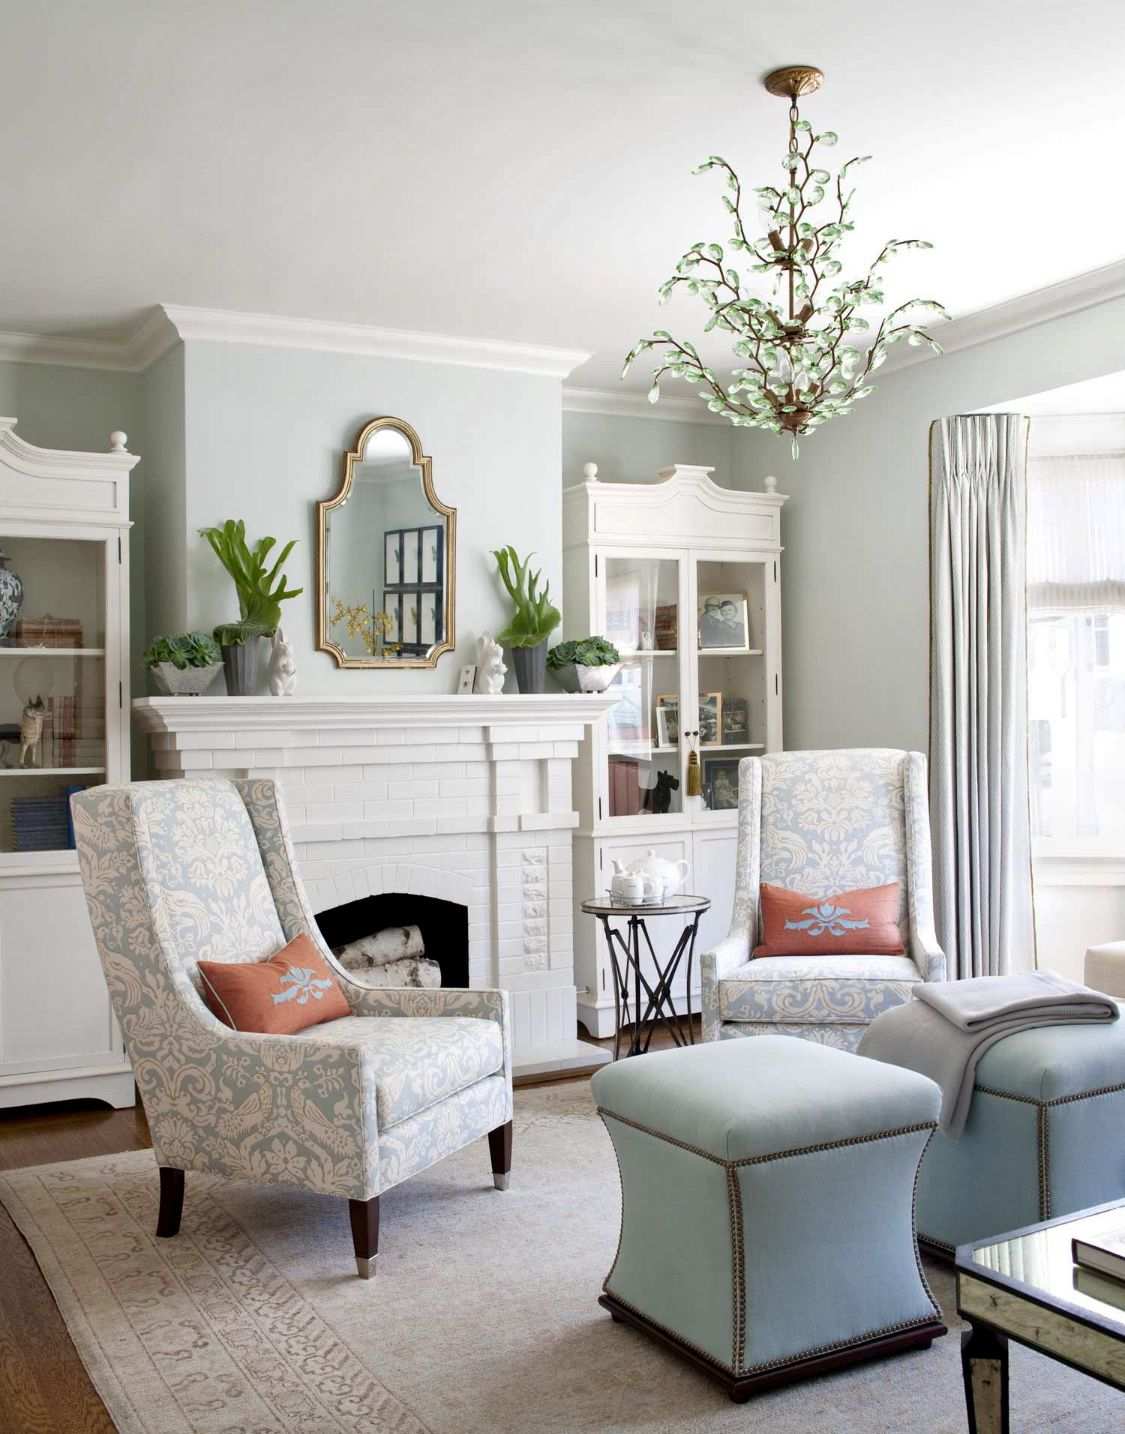 Living Room Designs Traditional: Traditional Style Living Room Decor, Country Style, High